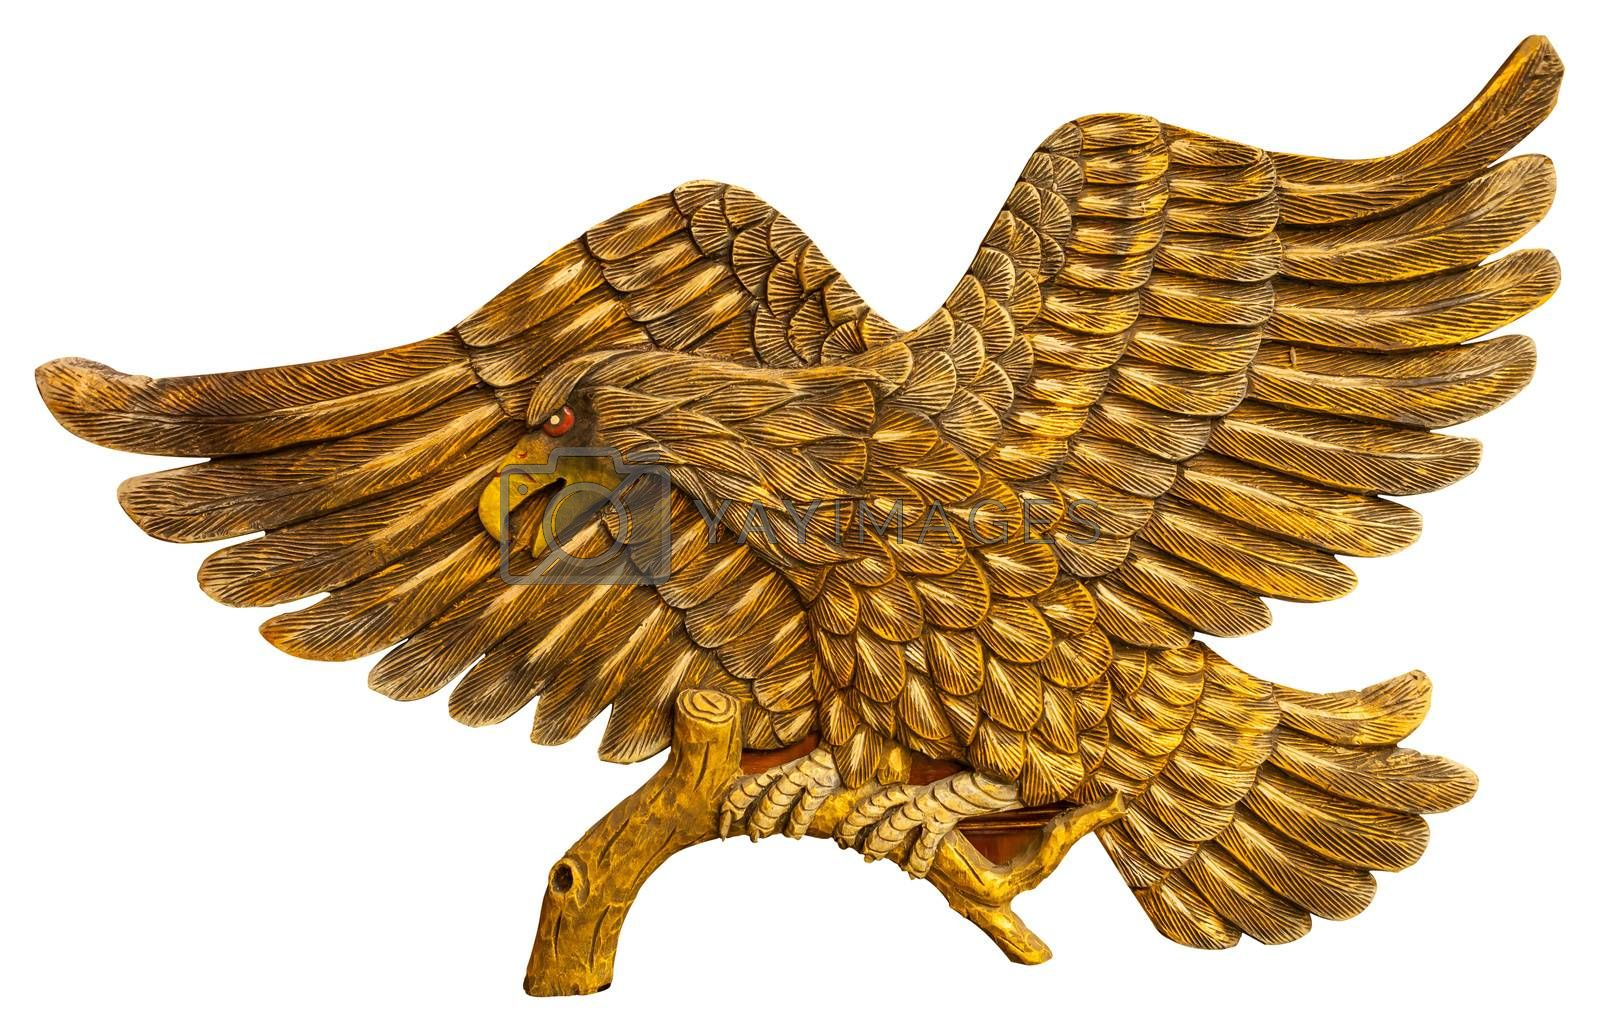 Thai style golden bird carving isolated on white background